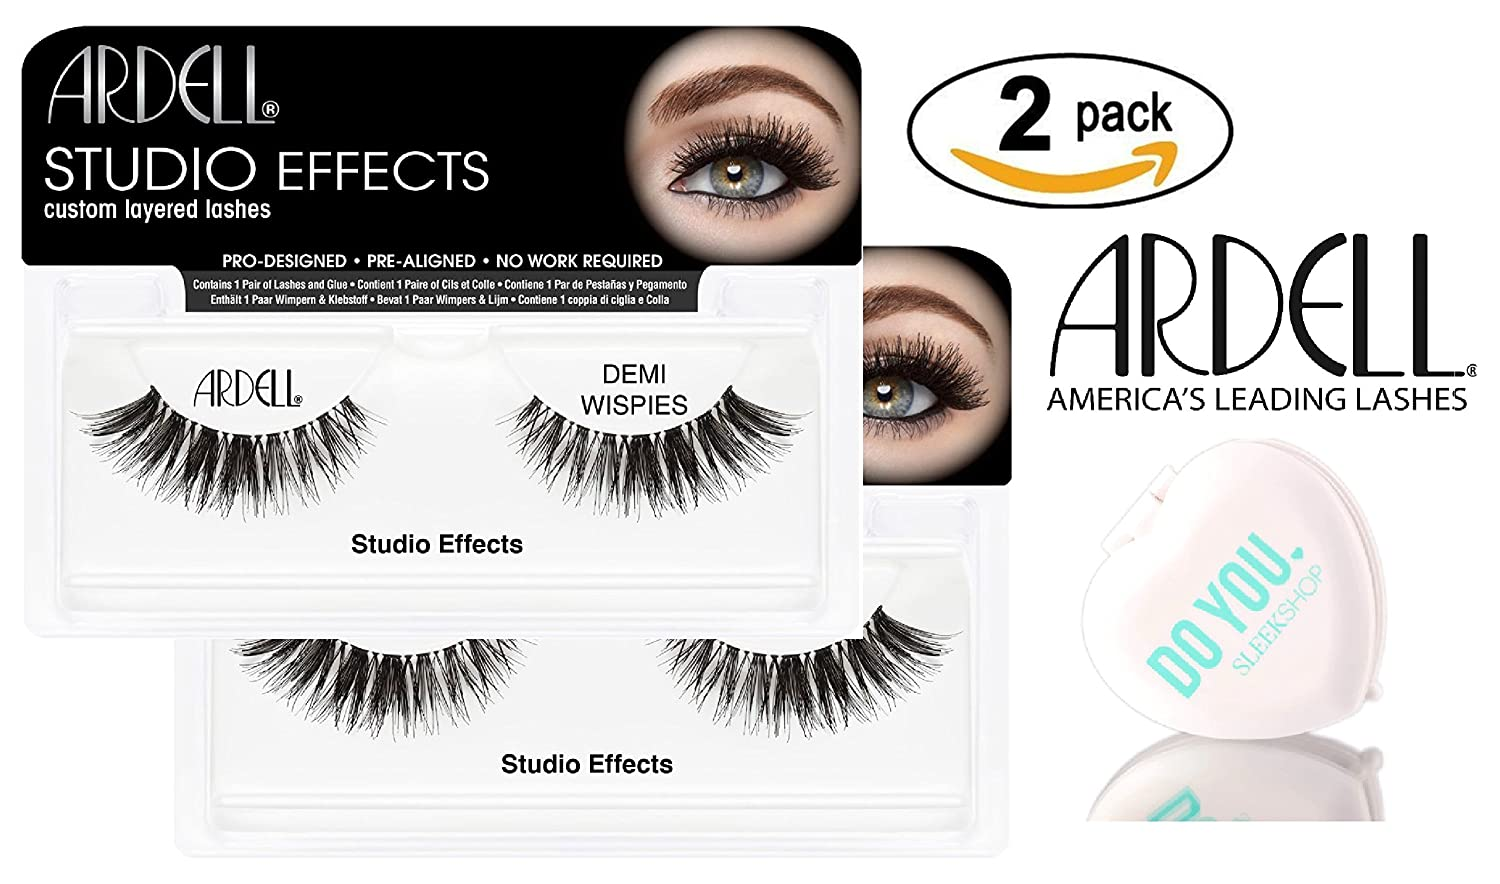 c3ae329f55b Amazon.com : Ardell Professional STUDIO EFFECTS Custom Layered Lashes,  2-pack (with Sleek Compact Mirror) (Demi Wispies (2-pack)) : Beauty